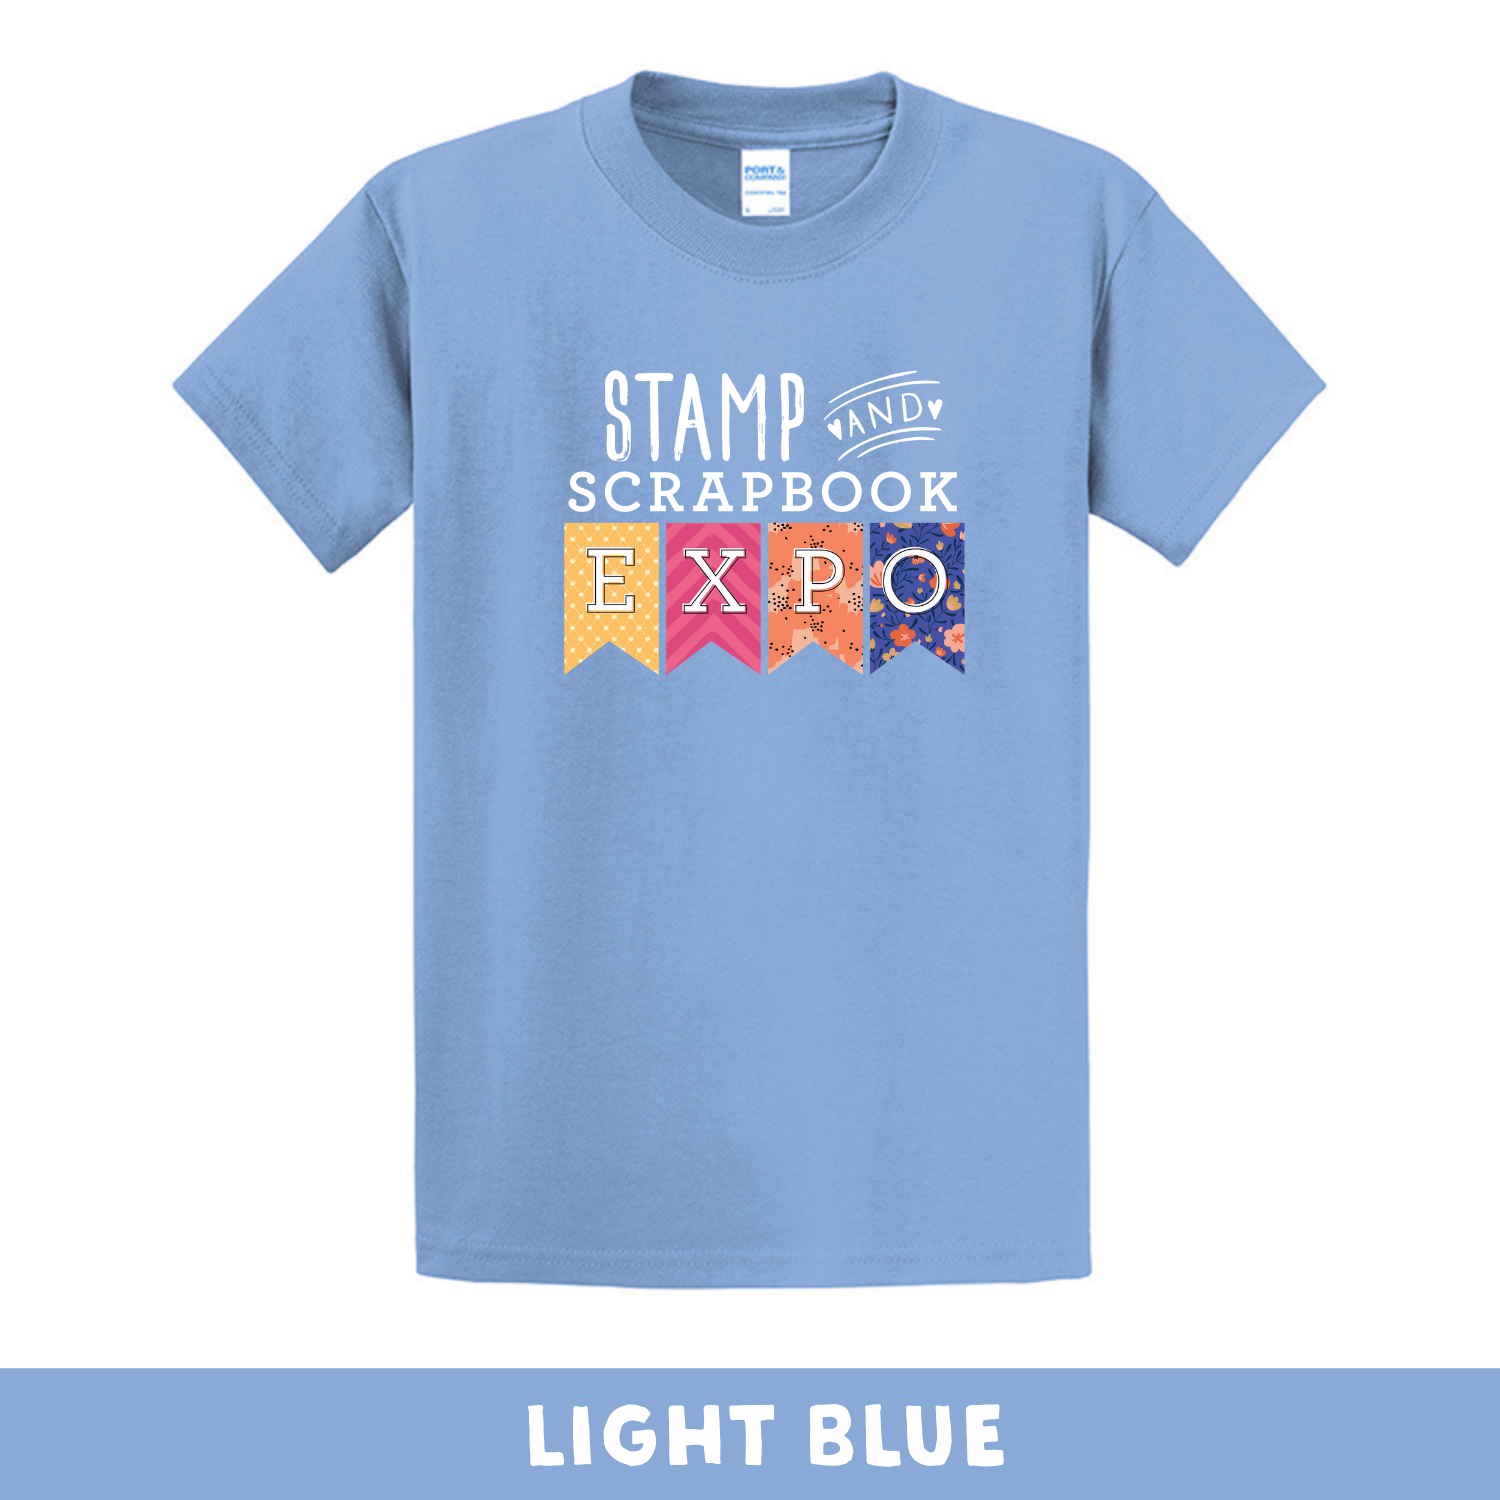 Light Blue - Crew Neck Unisex T-Shirt - Stamp & Scrapbook Expo Color Logo